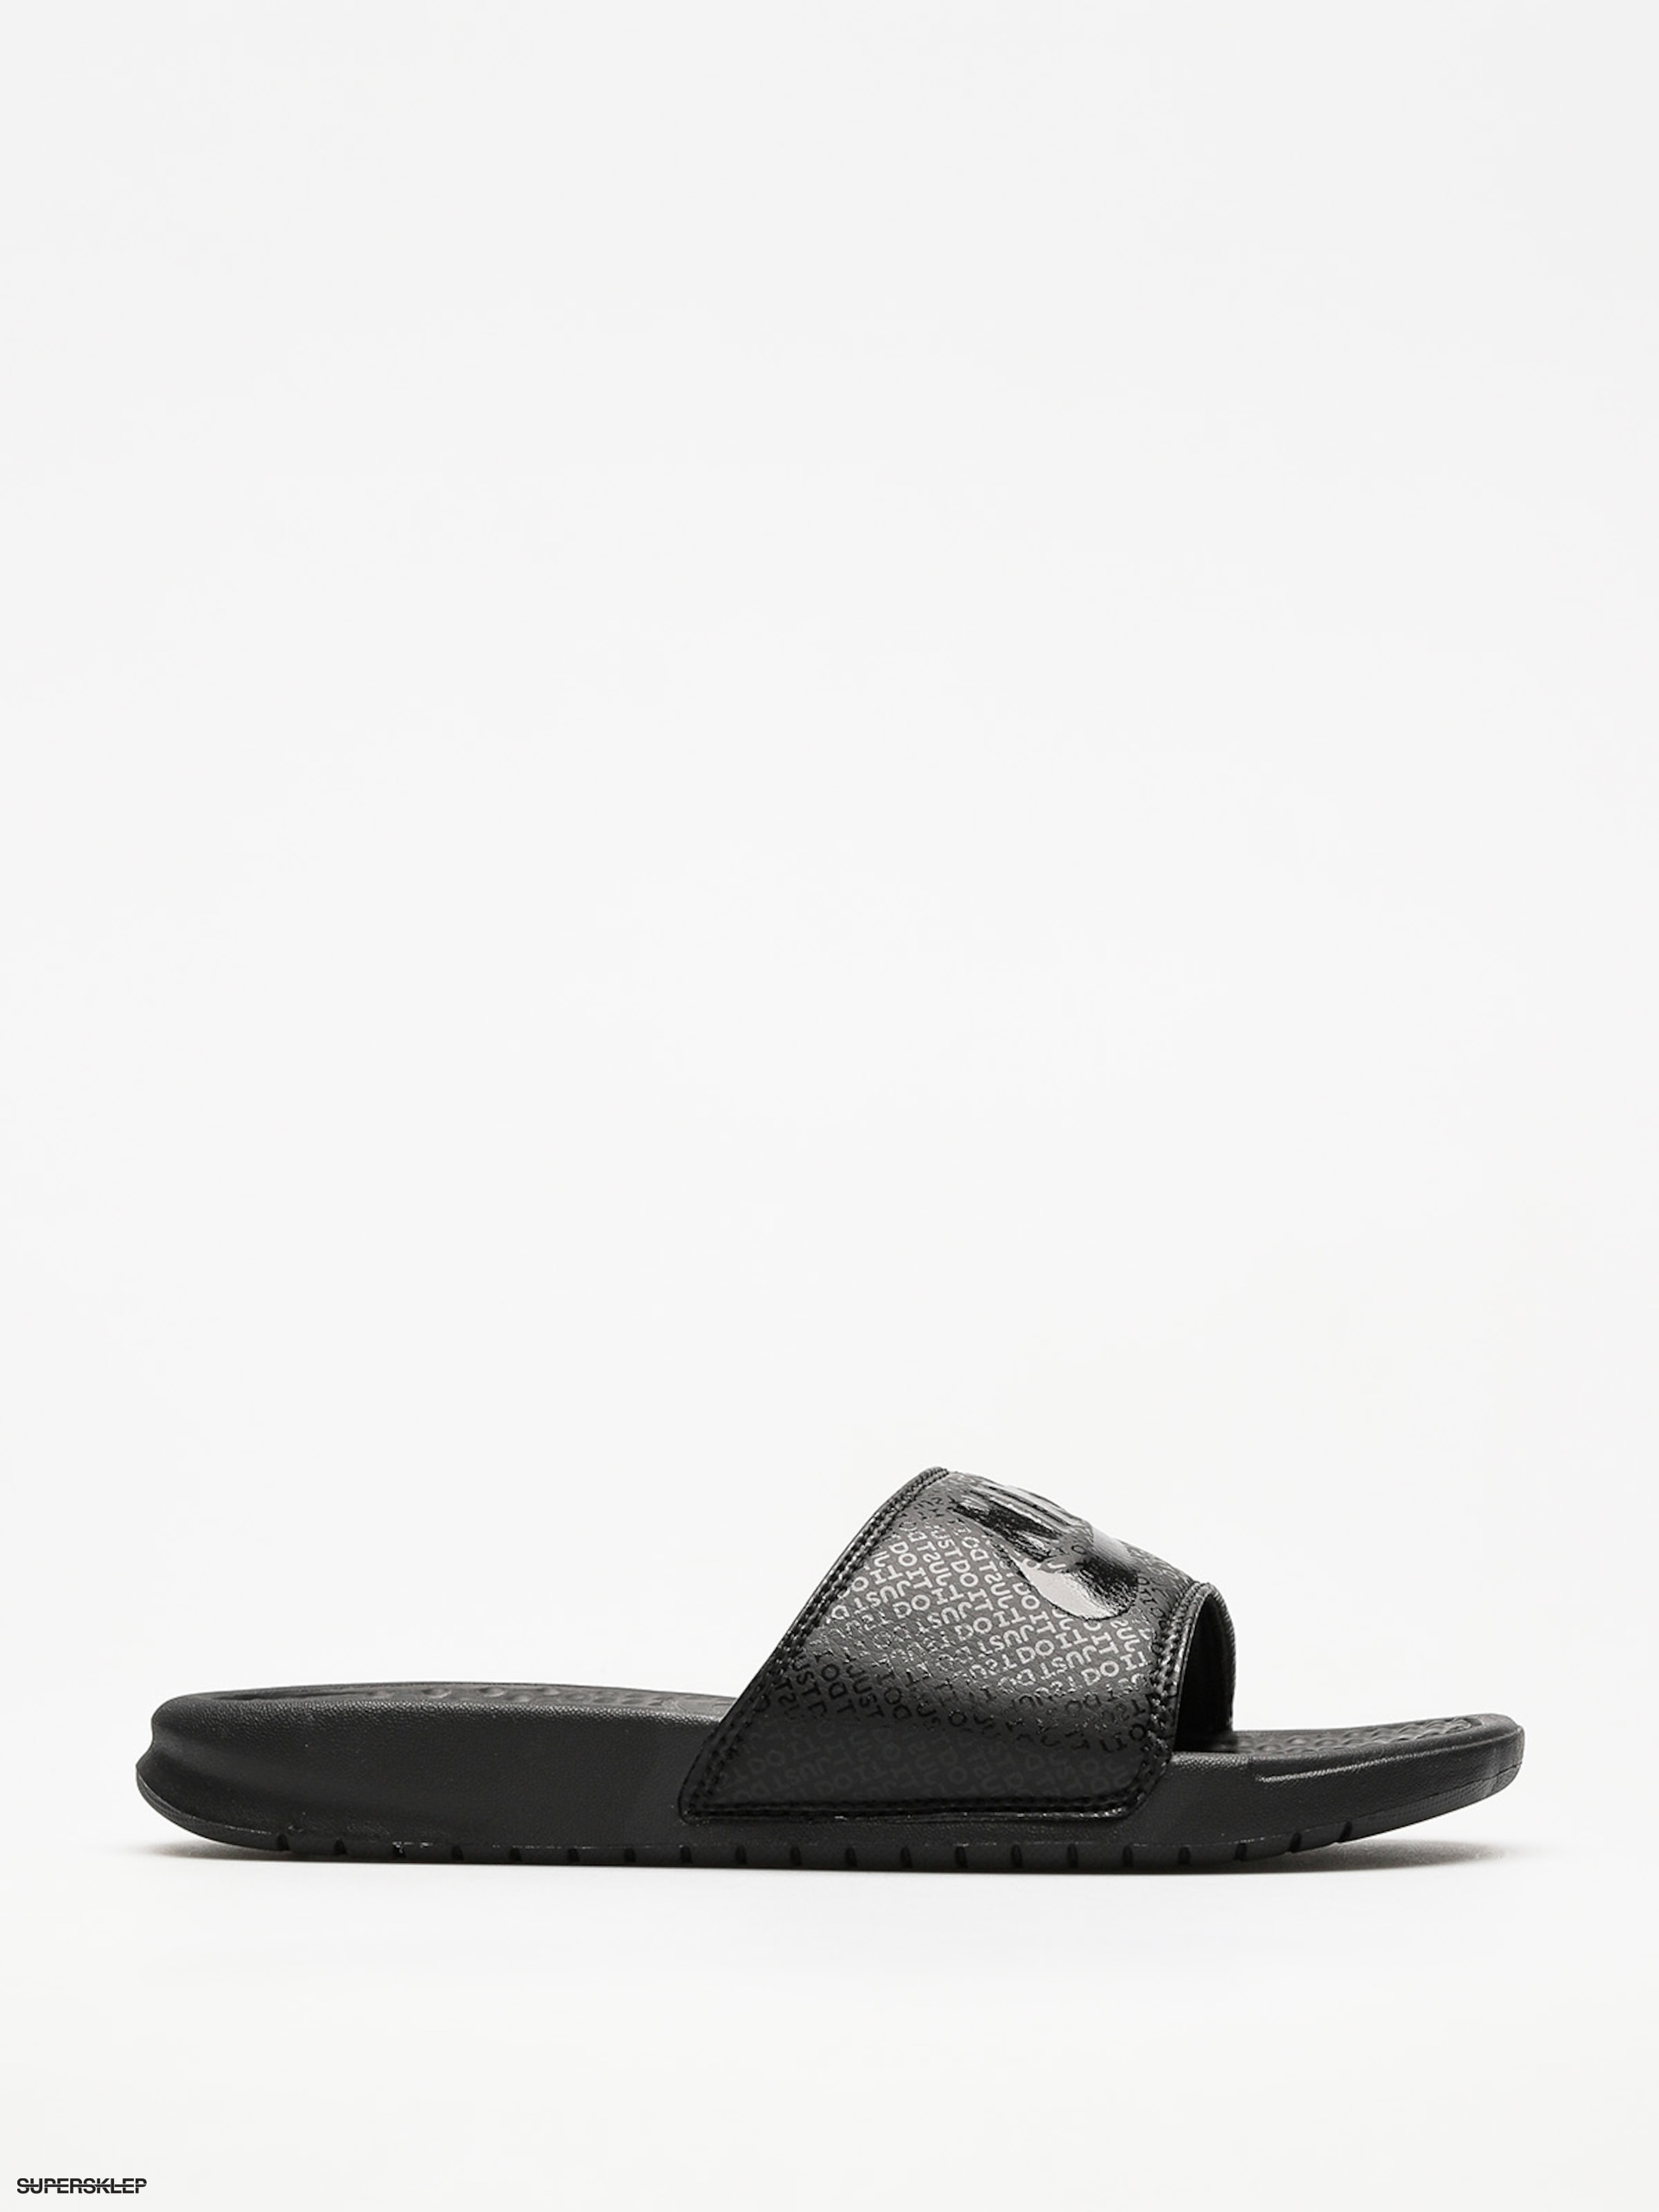 Klapki Nike Benassi Just Do It